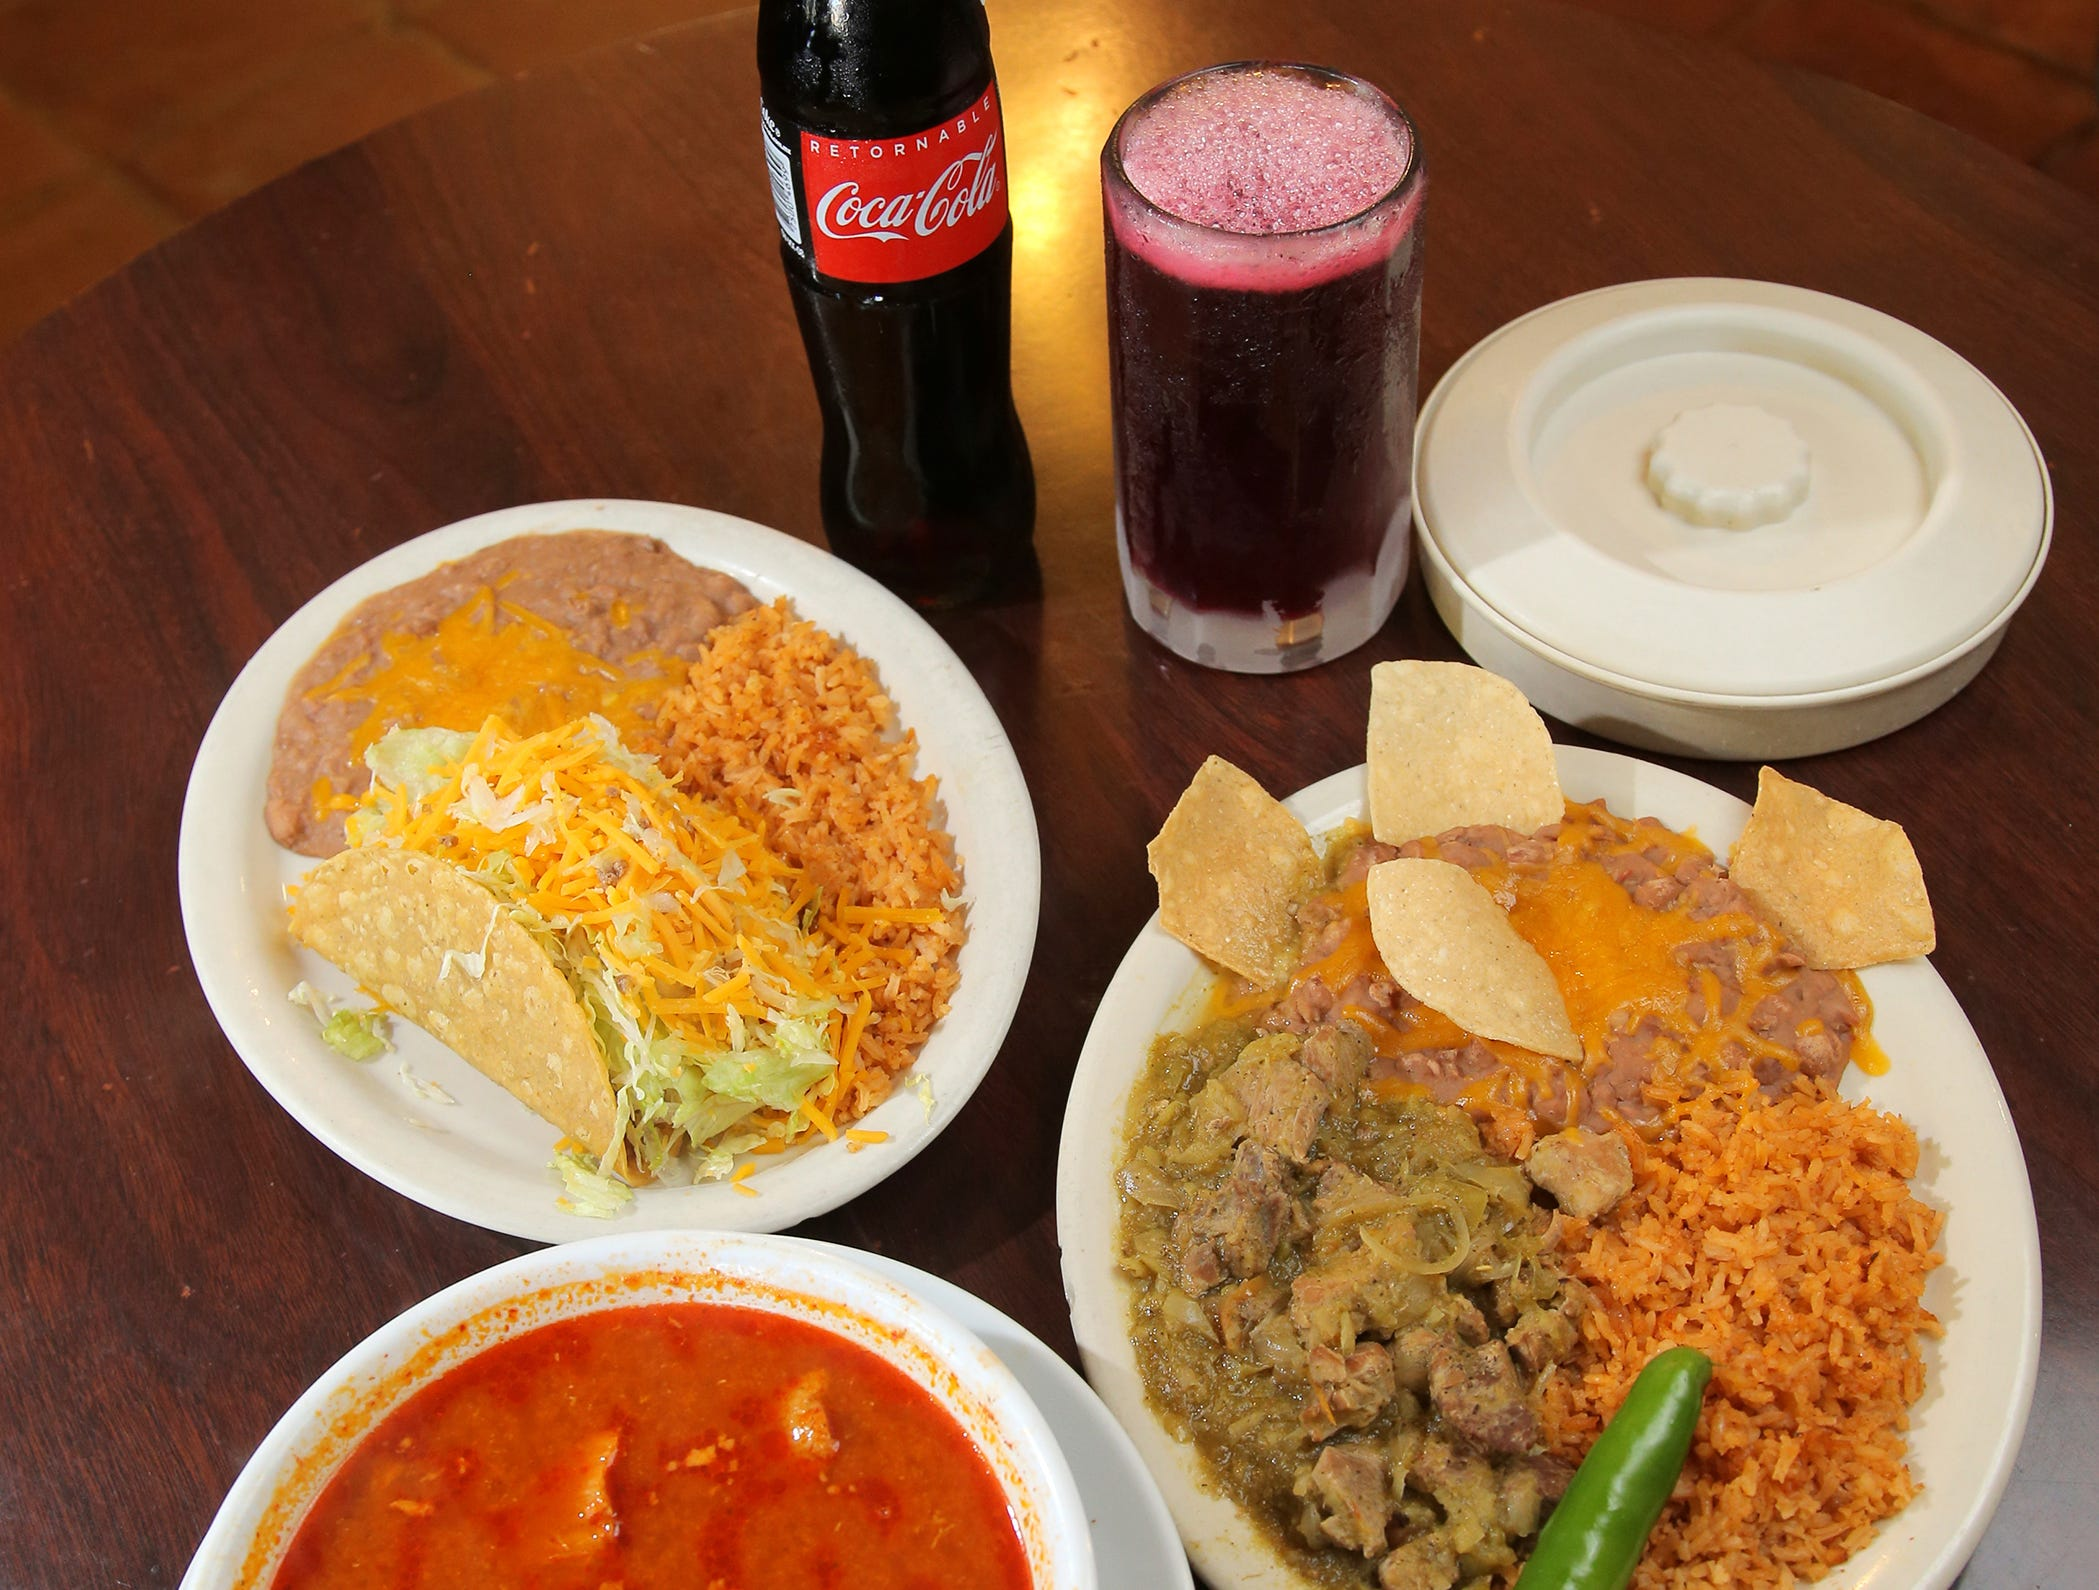 The Somis Café and Market has long been known for its large selection of authentic Mexican food. Pictured is its popular pozole soup, chile verde plate and a ground beef taco plate. It has  serves Coca-Cola from Mexico and the traditional Mexican drink Jamaica.